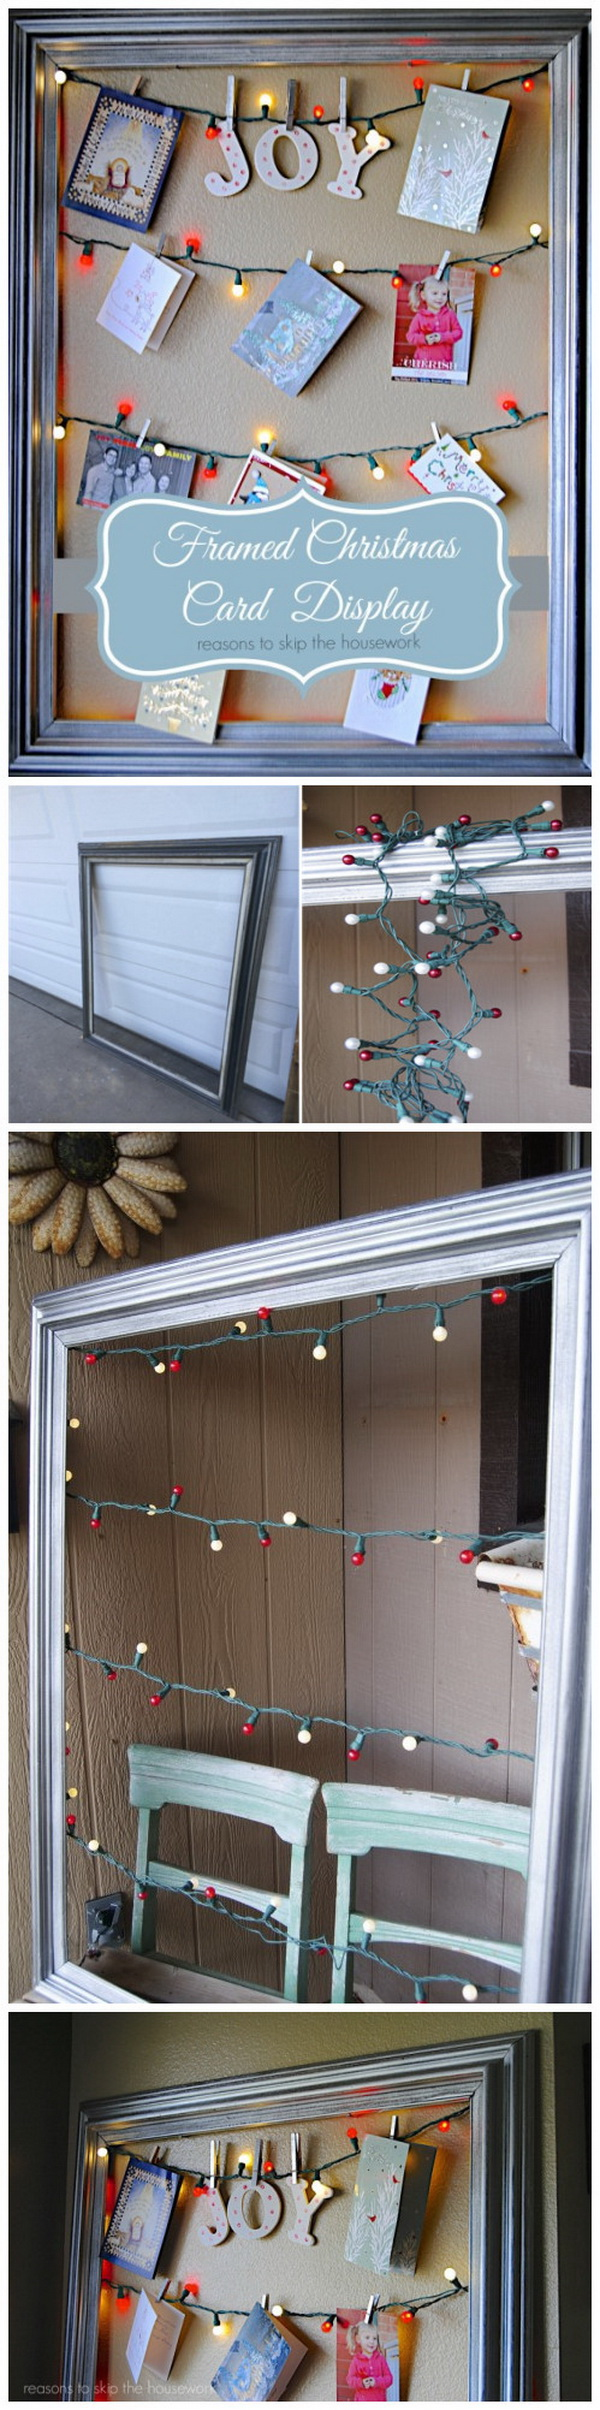 Lighted Christmas Card Display Frame. Love this unique way to display Christmas cards with string lights and a frame. It will surely be a focal point of your home this holiday!